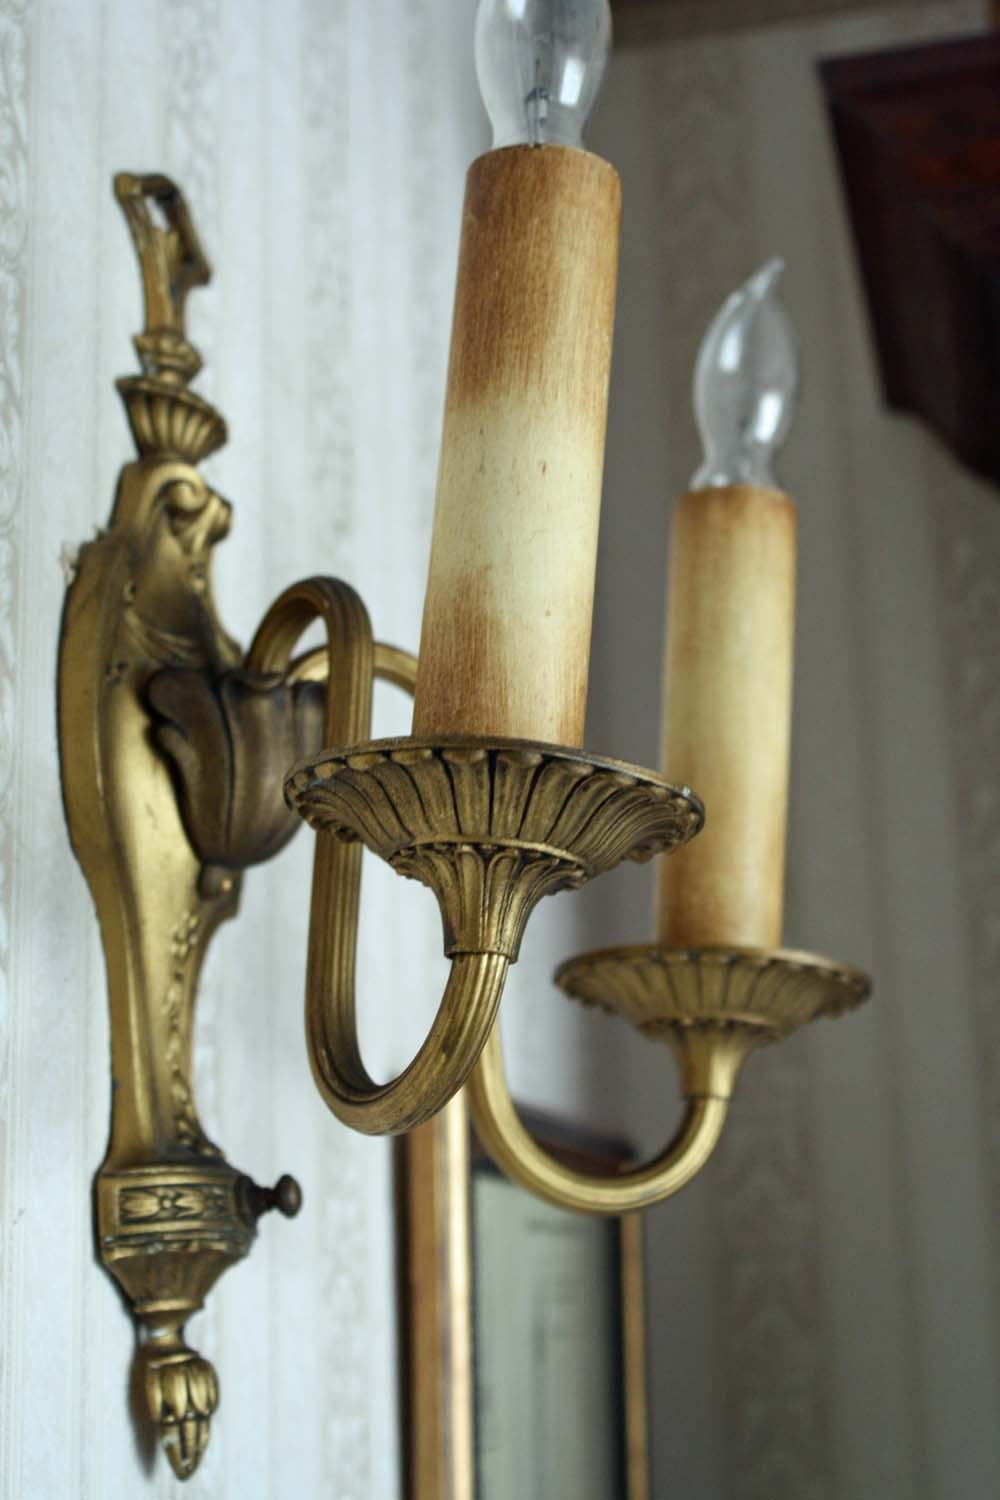 Vintage Lighting Wall Sconce Double Candle Electrical